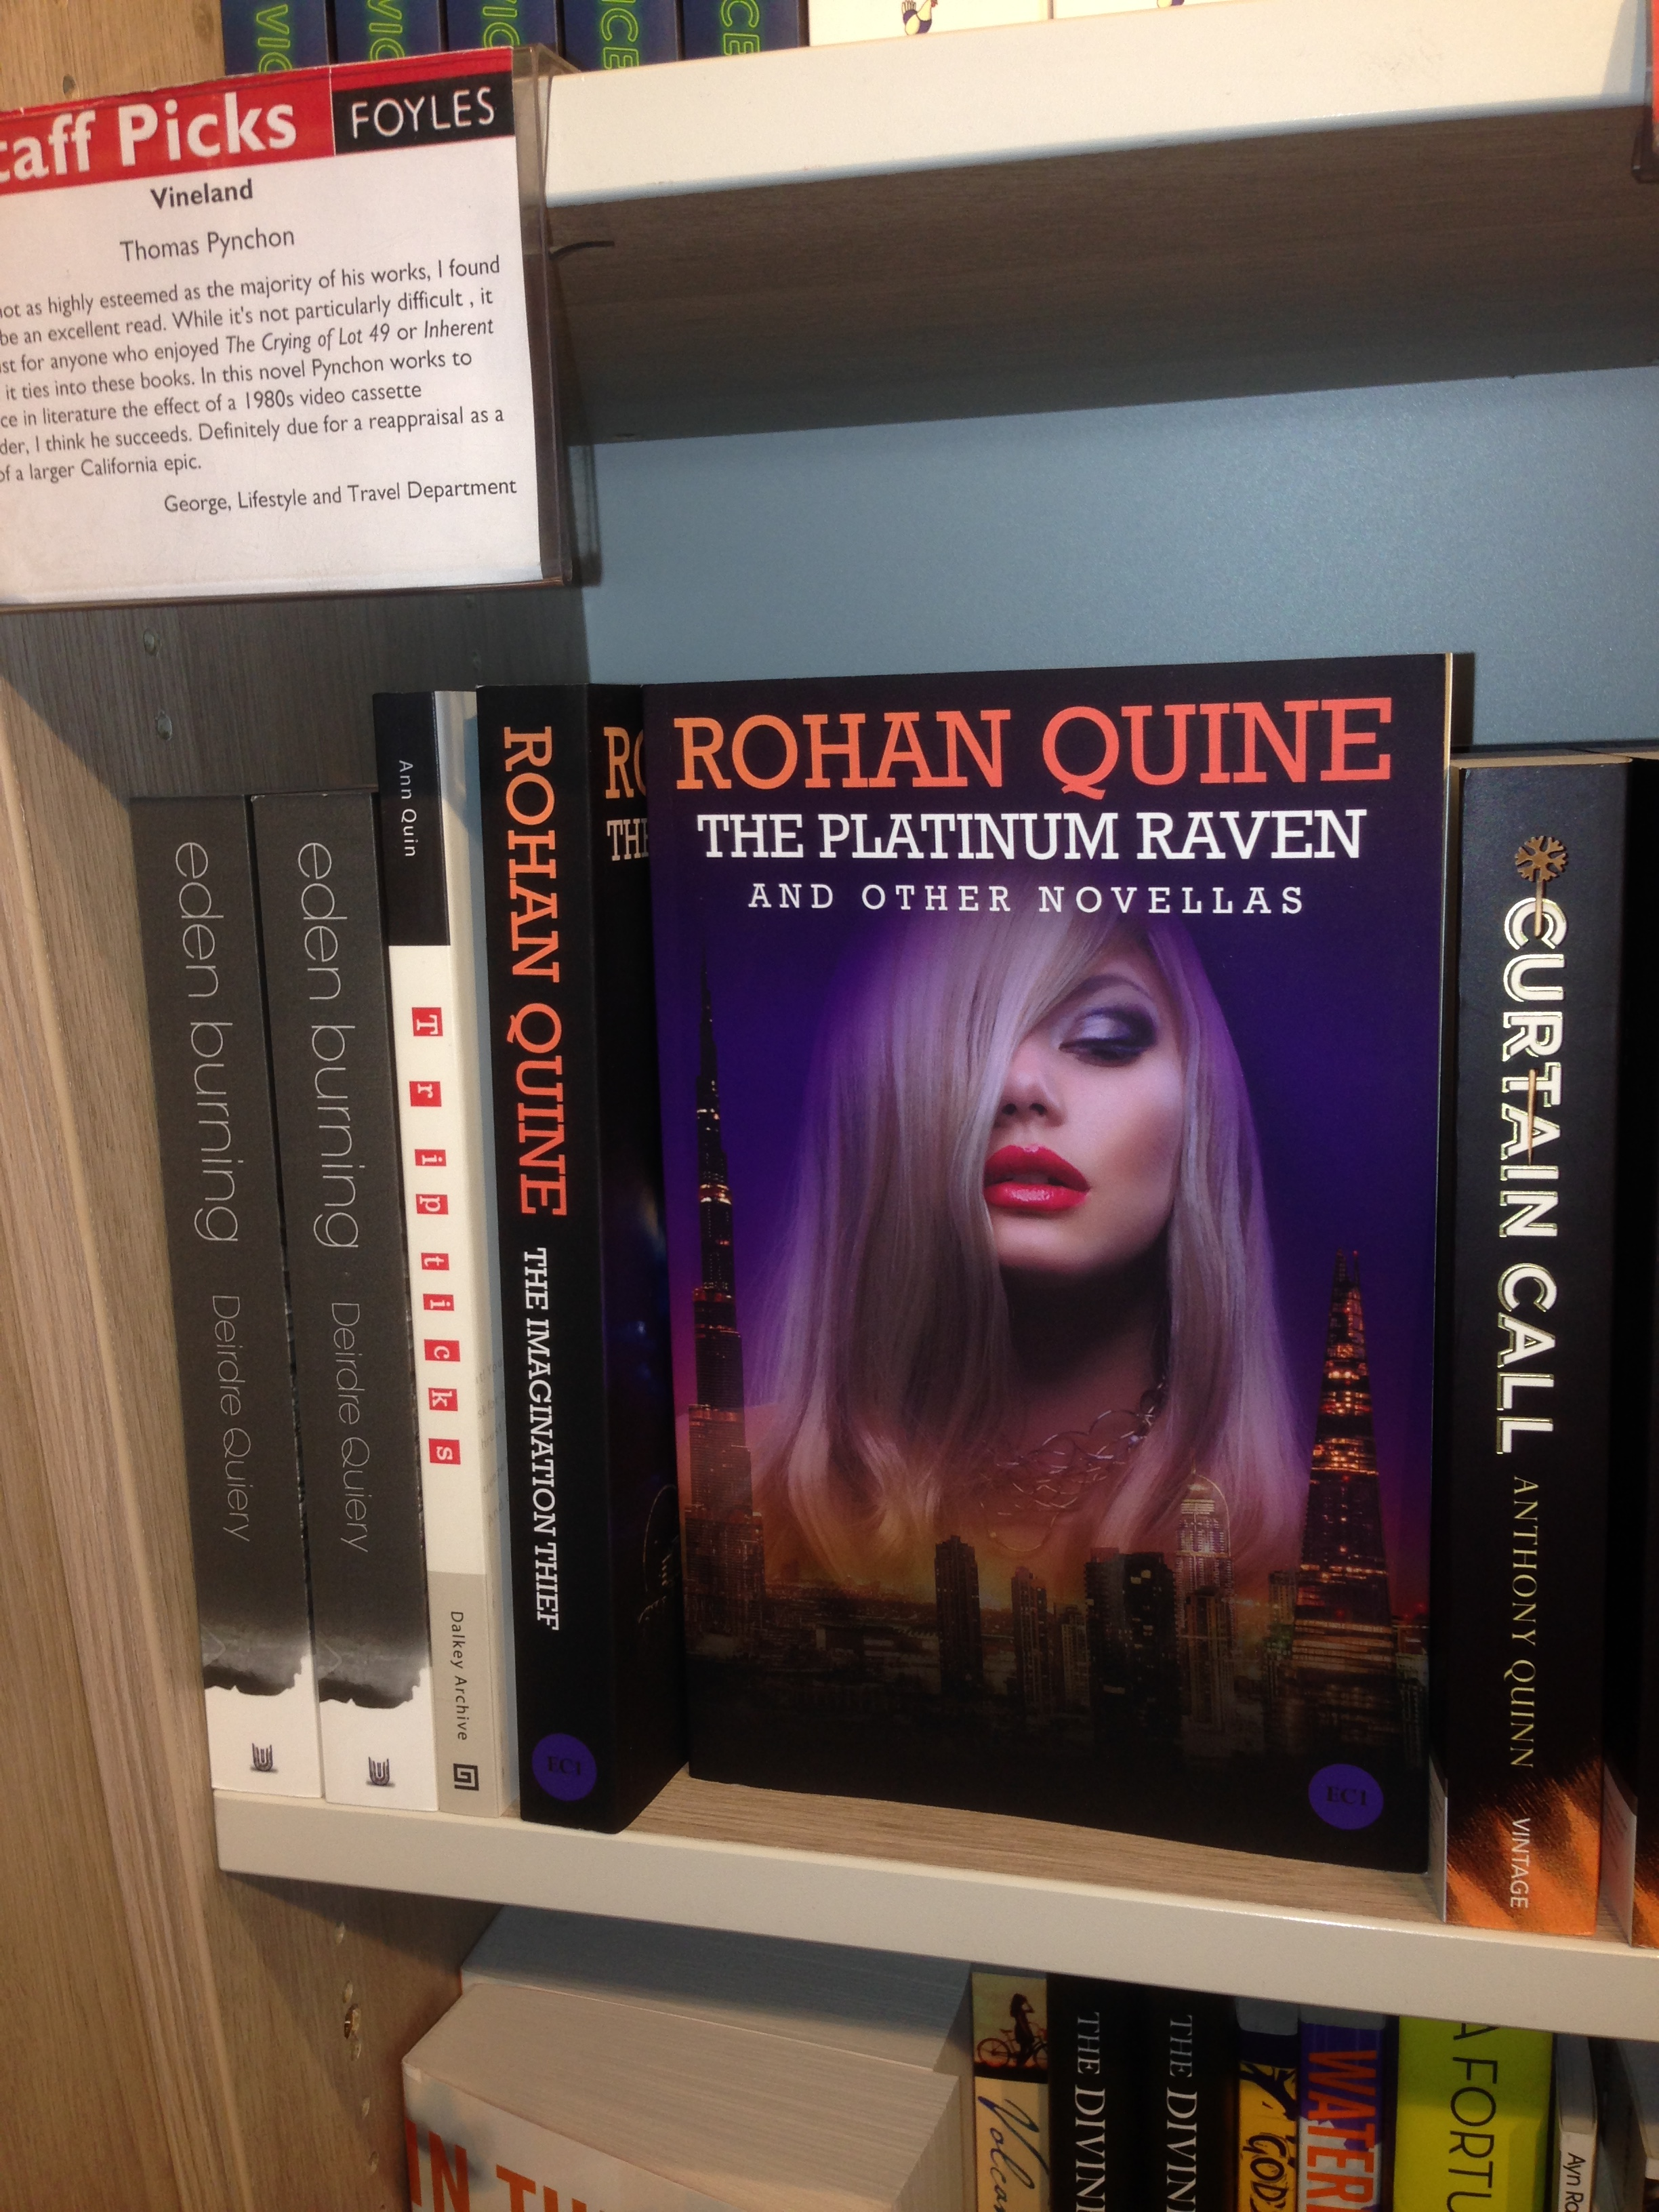 "Rohan Quine's ""The Platinum Raven and other novellas"" in Foyles' Fiction section"